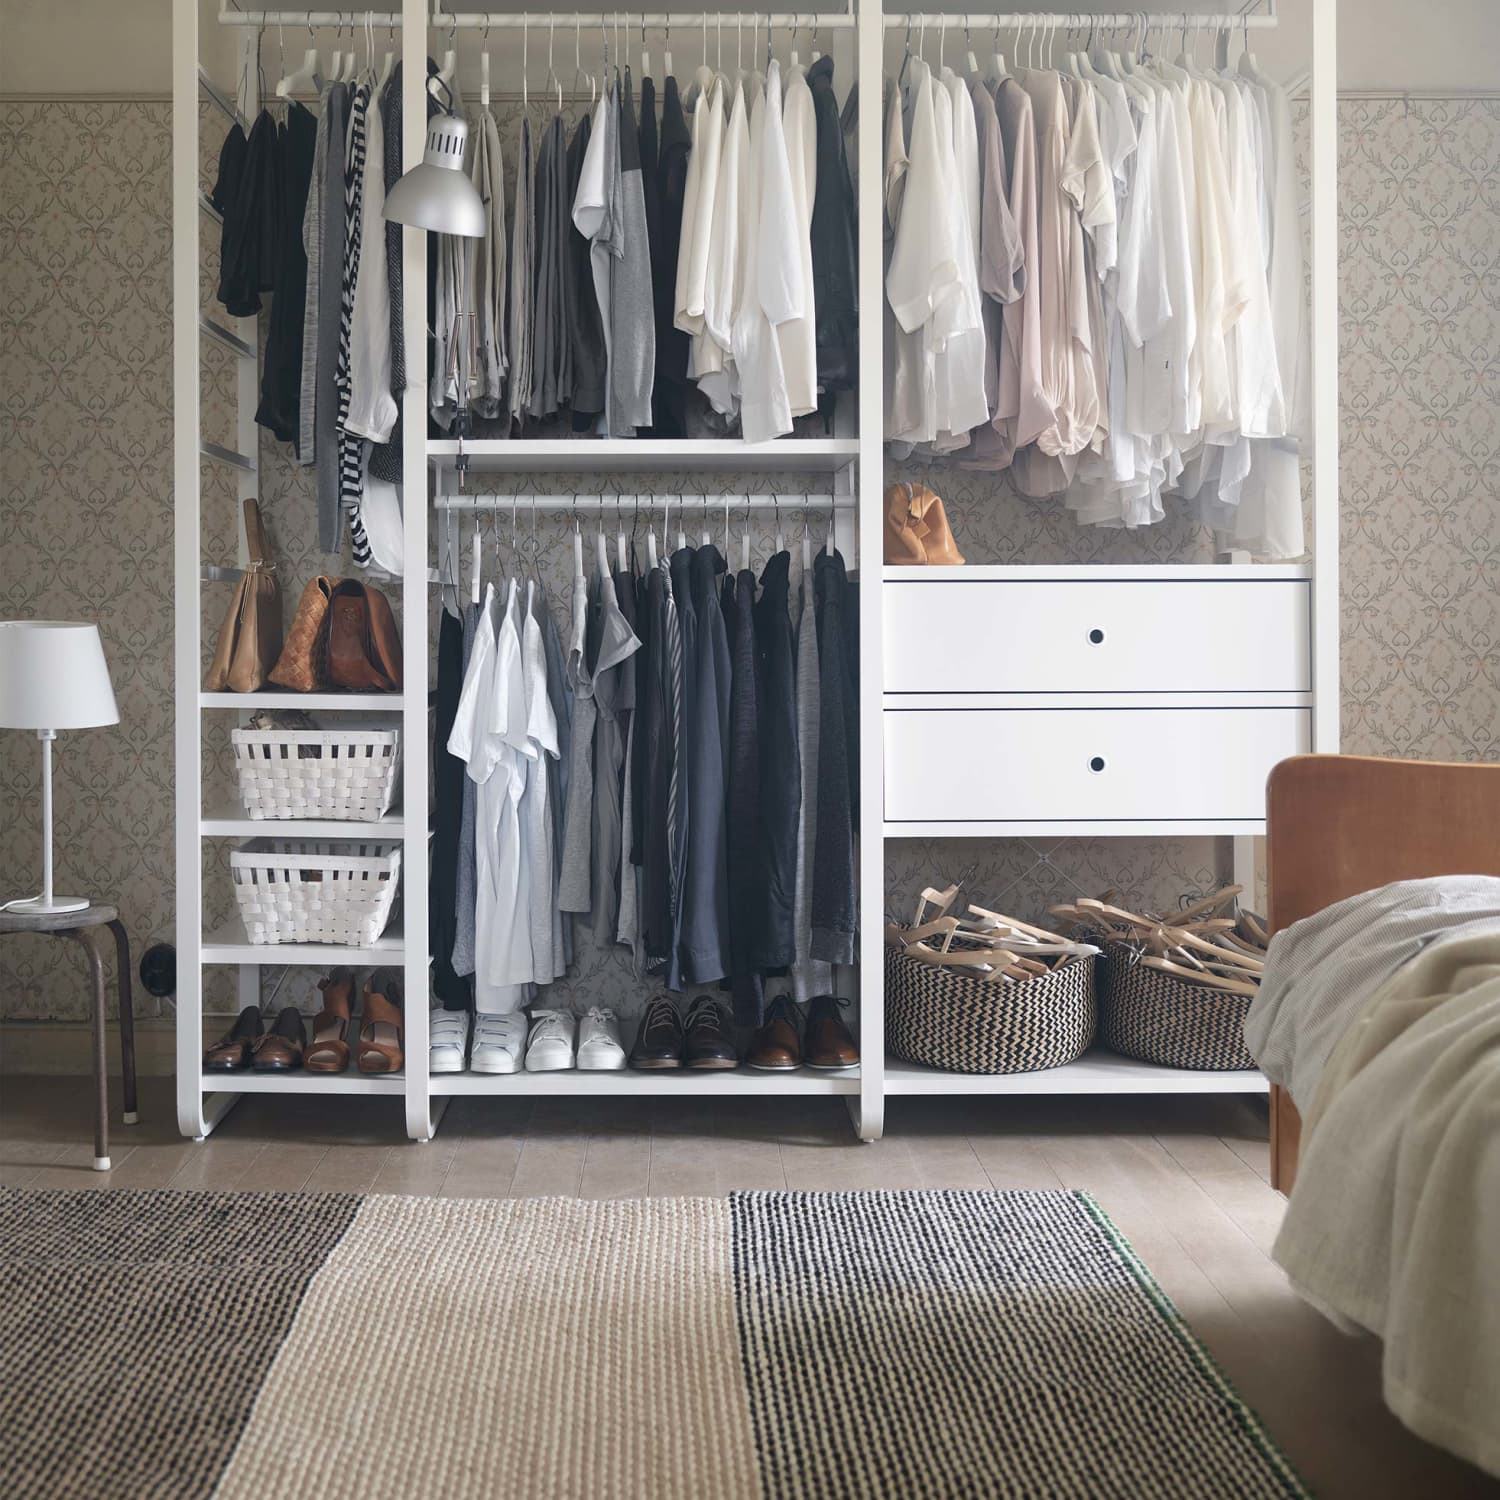 Ikea Wardrobe Leaning To One Side Elvarli Storage System Hack Ideas And Diy Projects